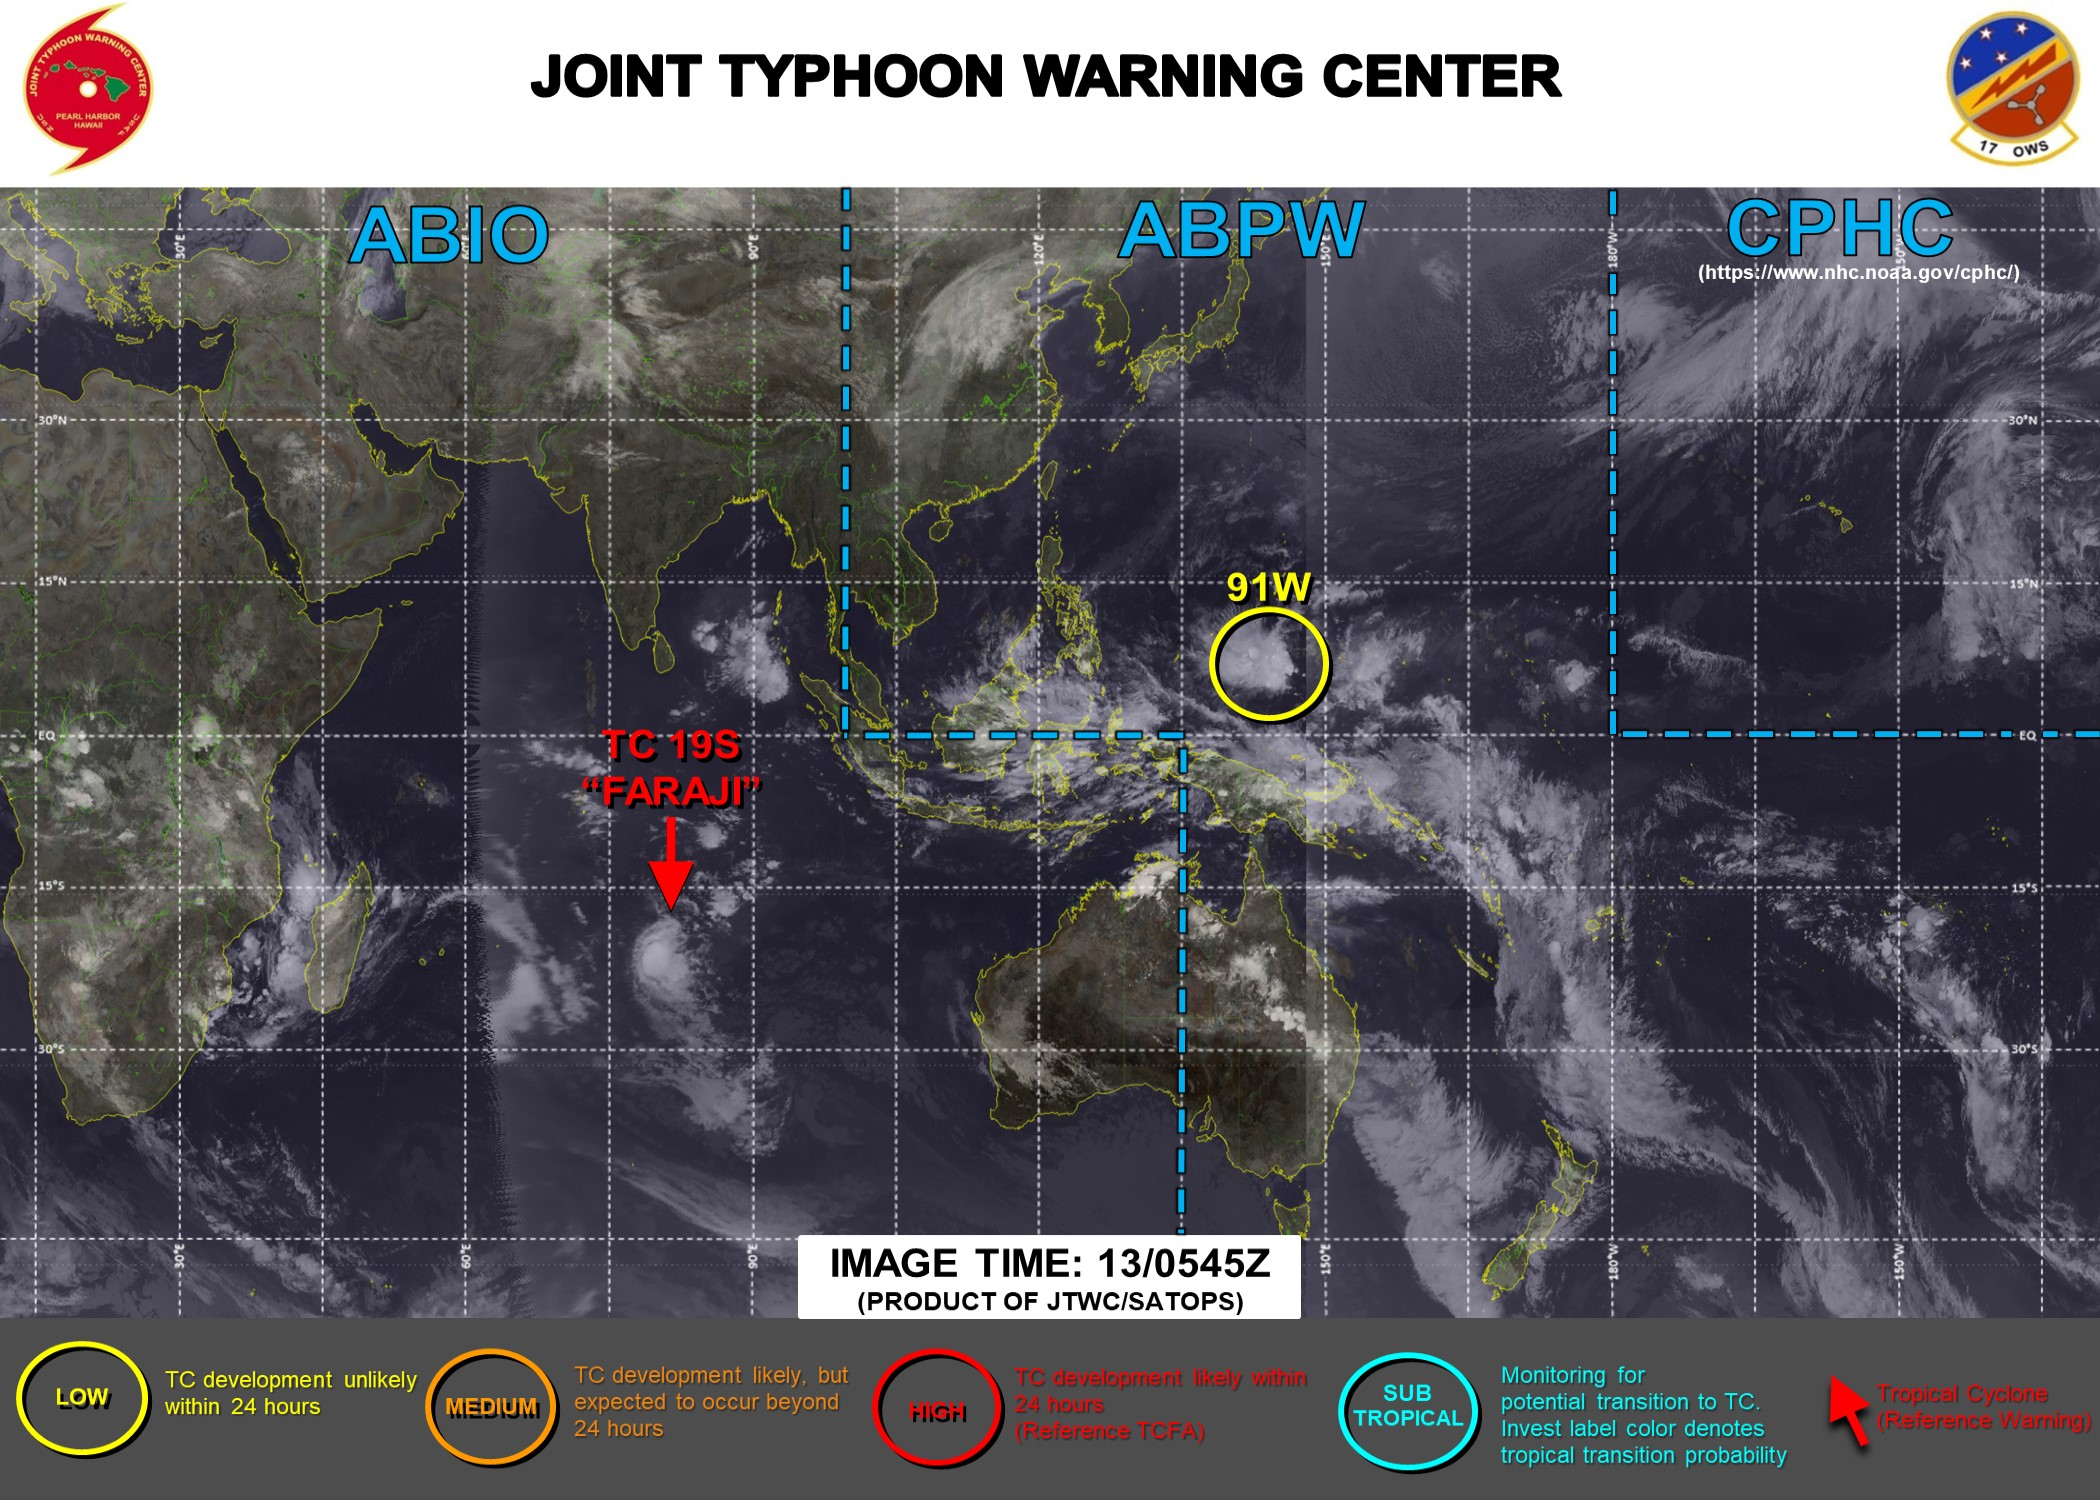 13/06UTC. INVEST 91W IS NOW ON THE MAP WITH AND IS LOW FOR THE NEXT 24HOURS. JTWC IS ISSUING 12HOURLY WARNINGS ON 19S. 3 HOURLY SATELLITE BULLETINS ARE ISSUED FOR 19S AND 93S( MOZ CHANNEL).